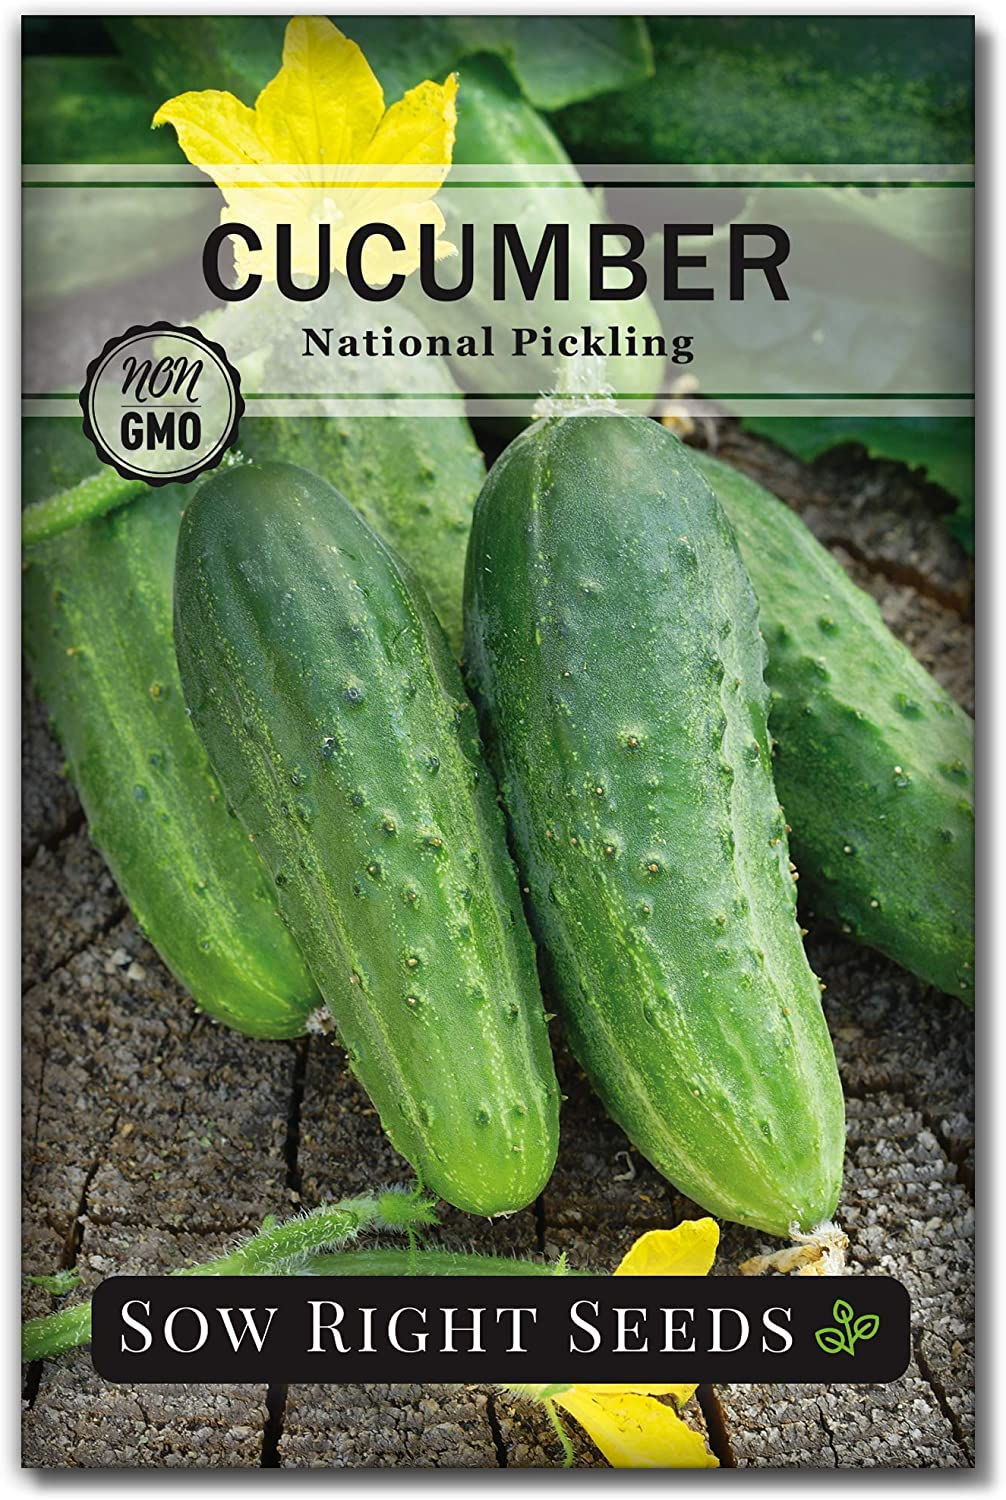 Sow Right Seeds - National Pickling Cucumber Seeds for Planting - Non-GMO Heirloom Seeds with Instructions to Plant and Grow a Home Vegetable Garden, Great Gardening Gift (1)